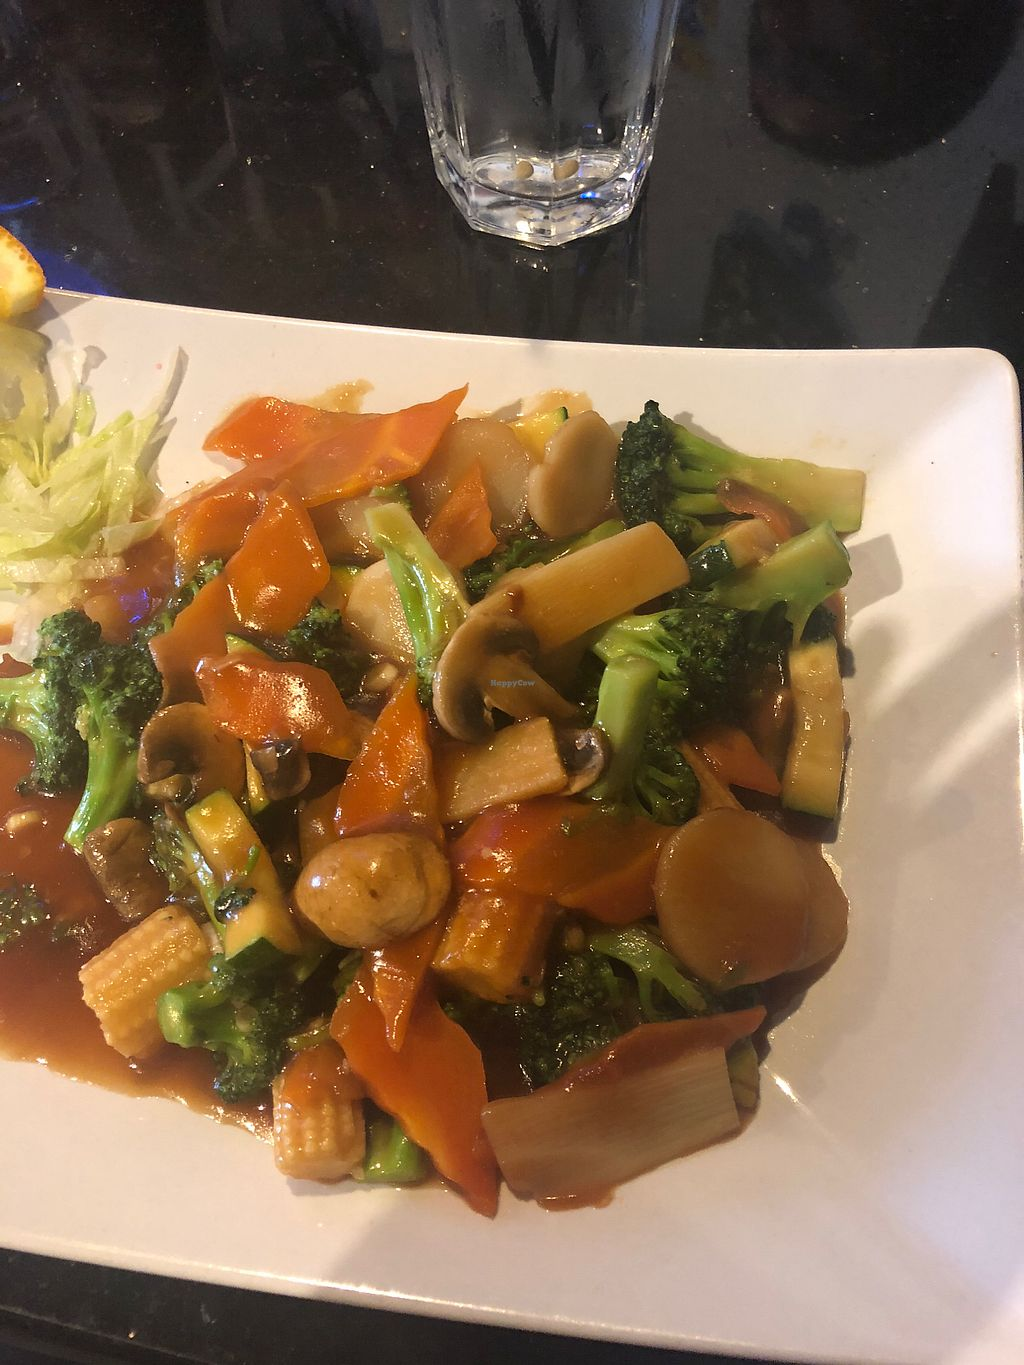 """Photo of Oriental Bistro & Grill  by <a href=""""/members/profile/alexis17"""">alexis17</a> <br/>Veggie dish <br/> April 21, 2018  - <a href='/contact/abuse/image/92839/389130'>Report</a>"""